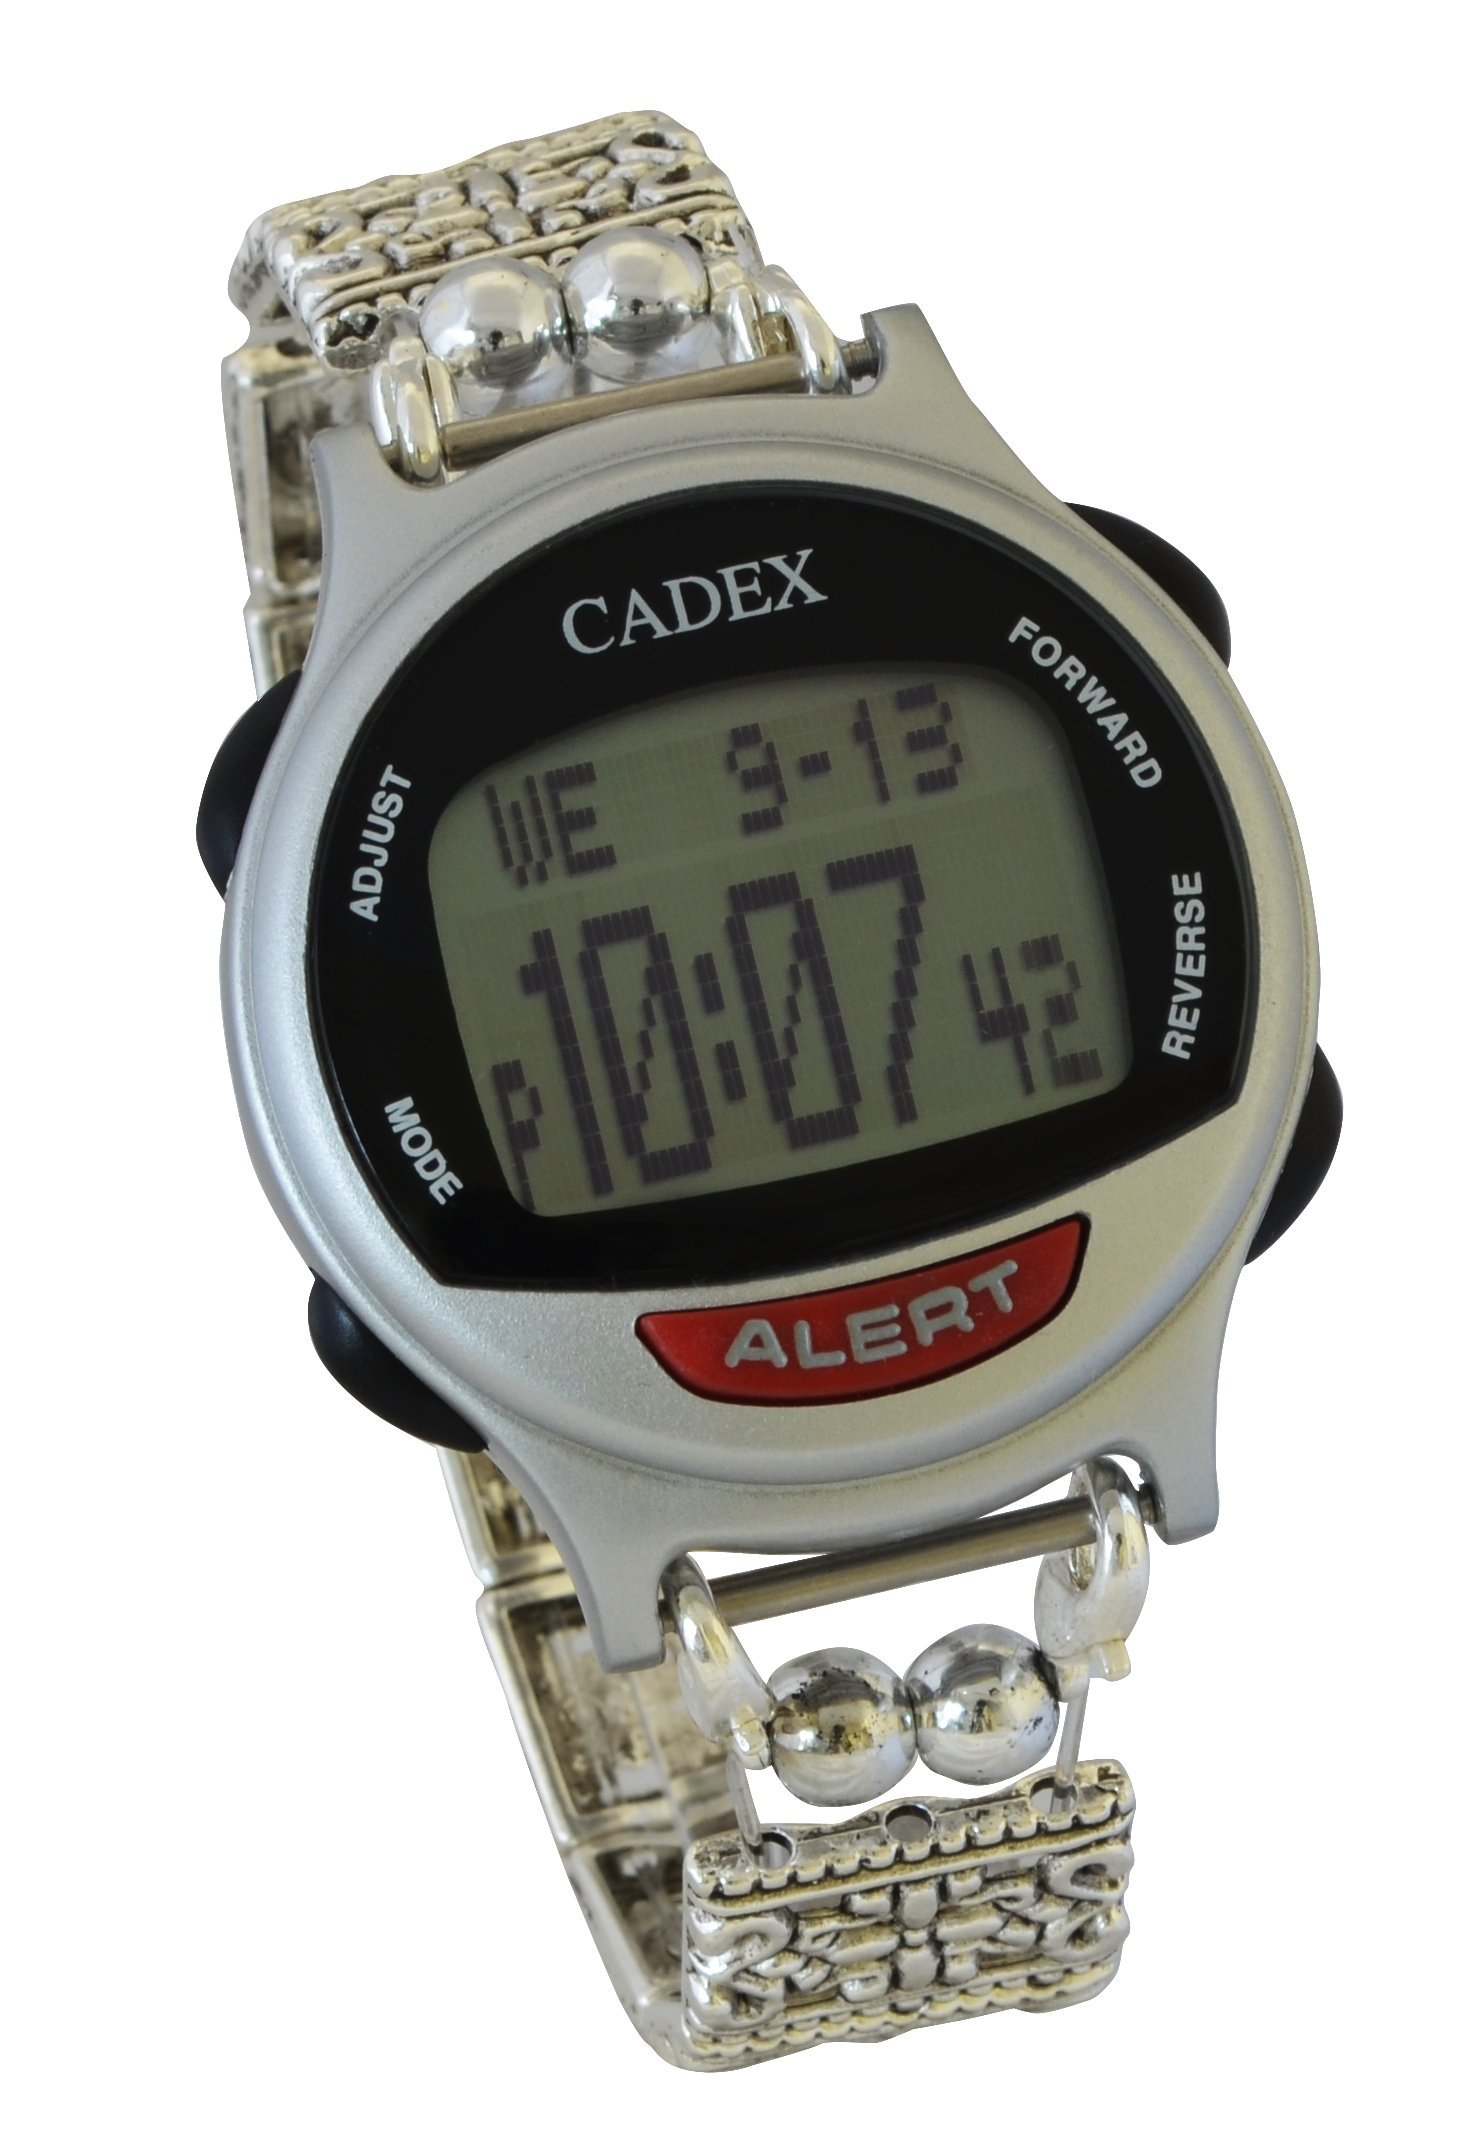 12 Alarm e-pill CADEX Platinum Women's Medical Alert Watch